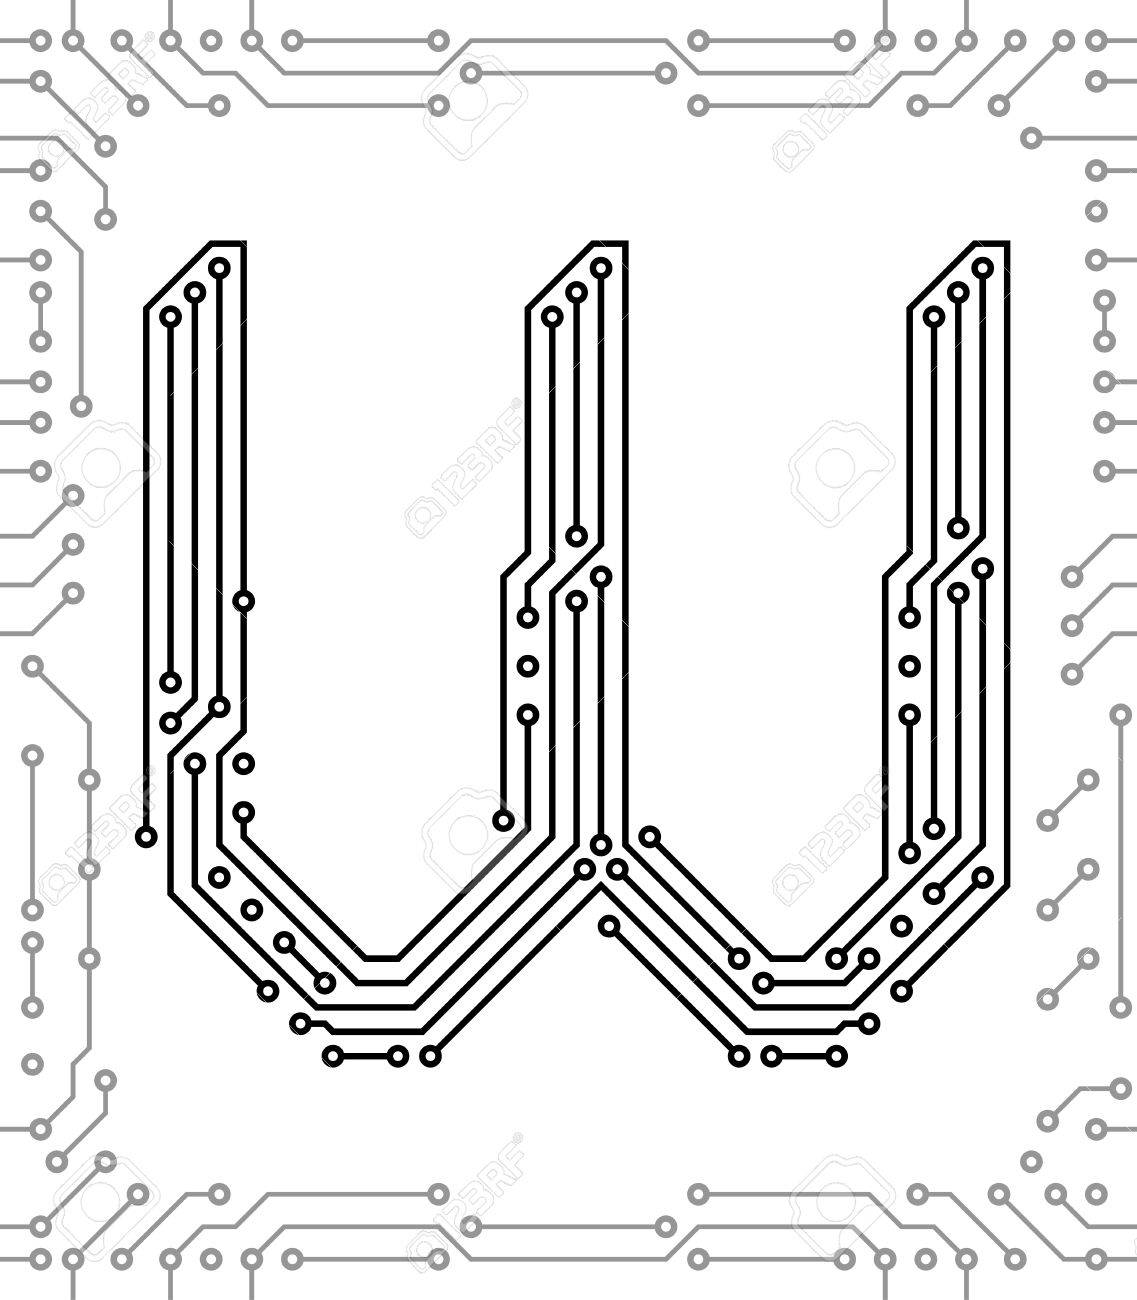 Alphabet Of Printed Circuit Boards. Easy To Edit. Capital Letter ...